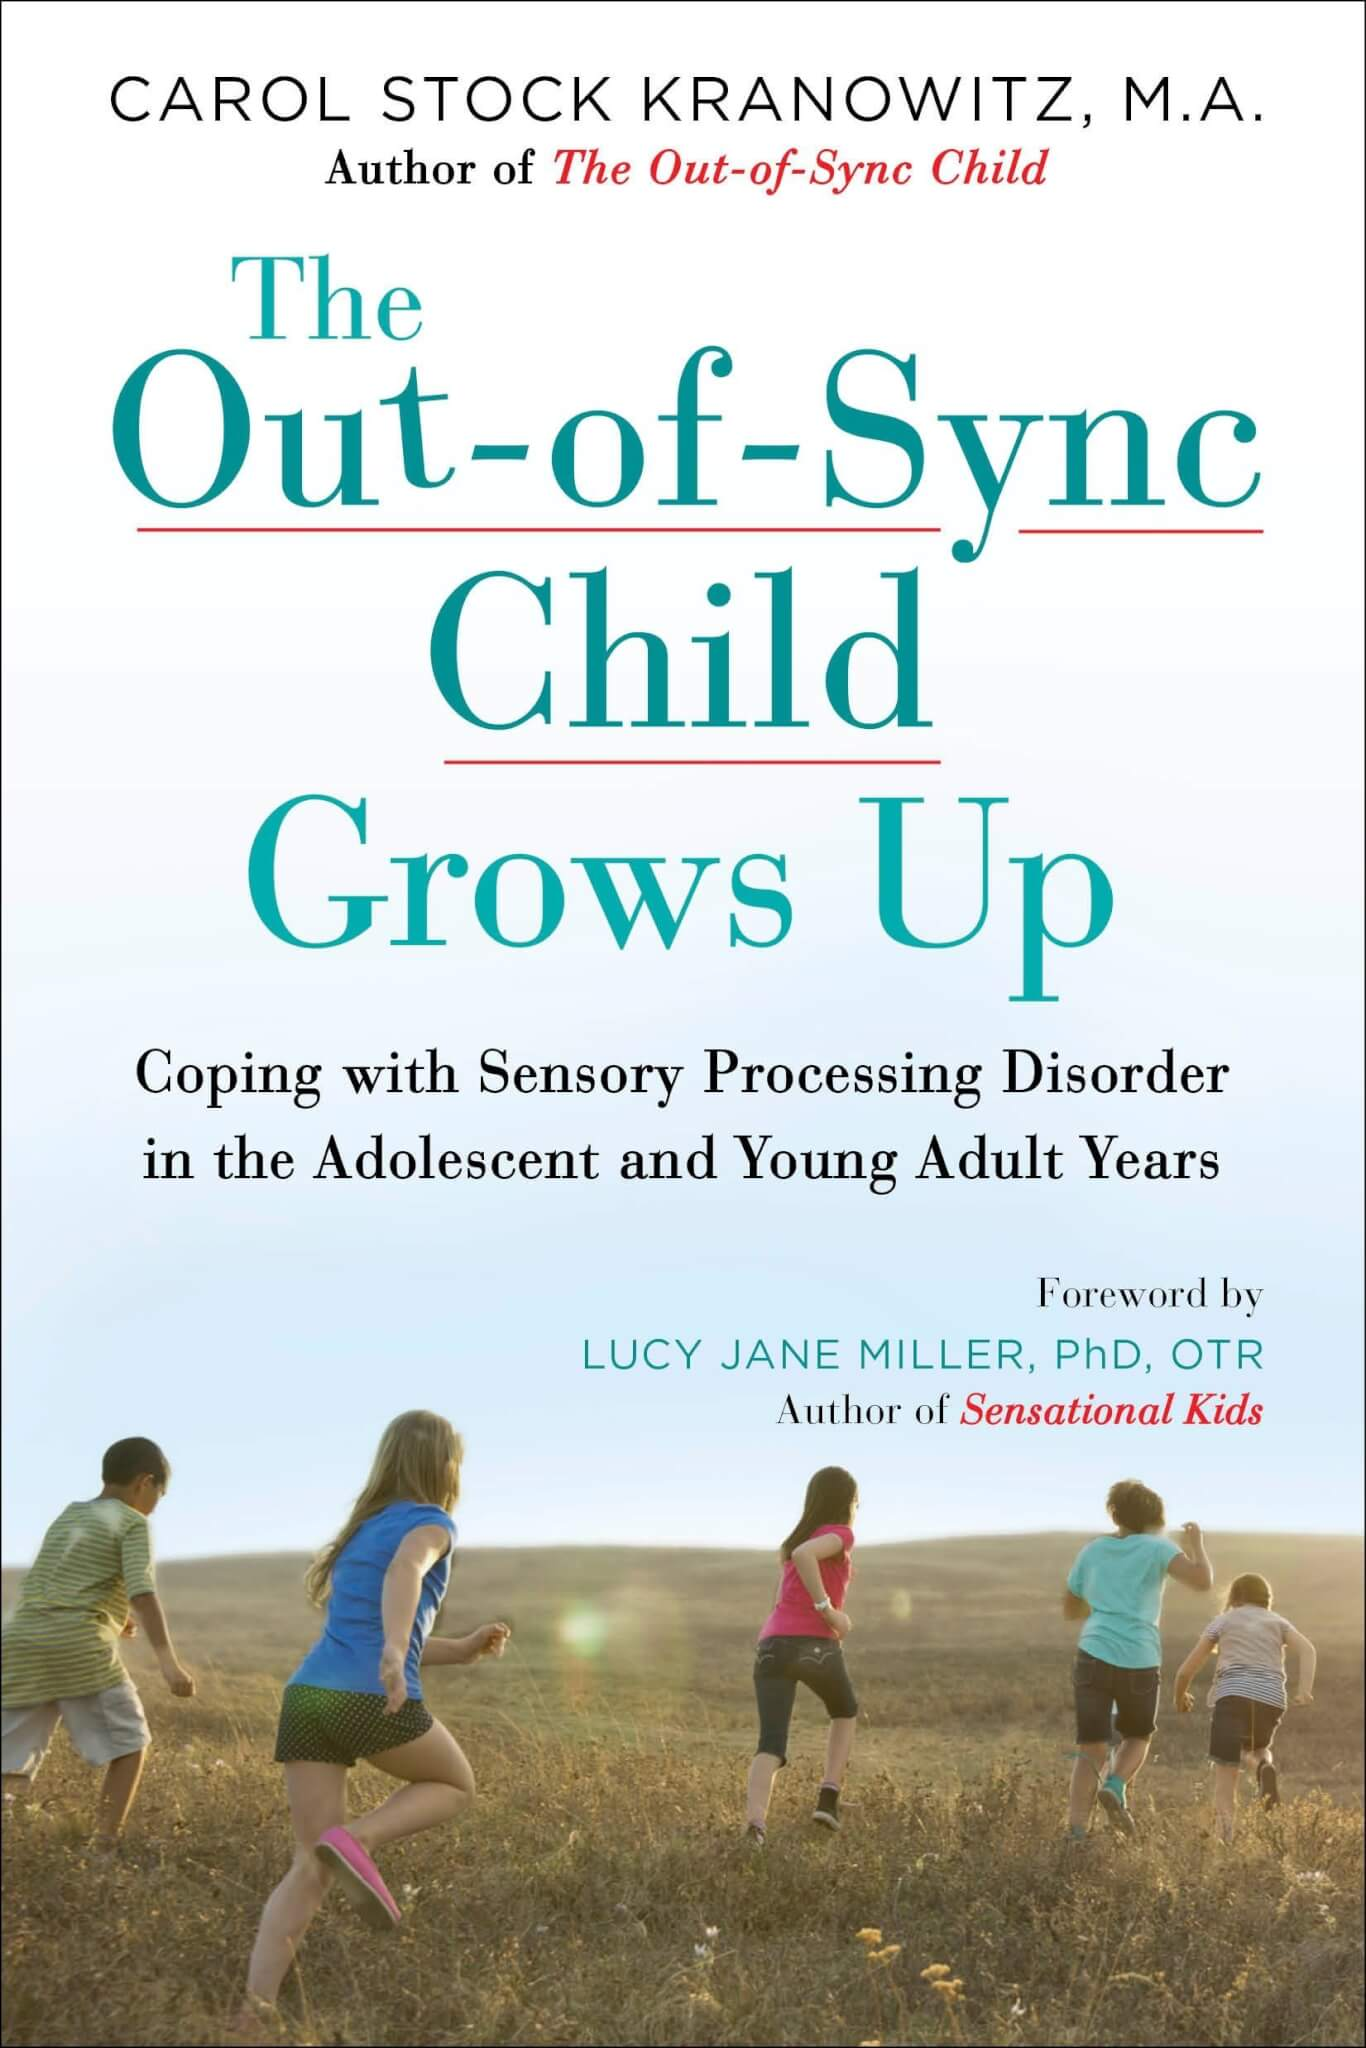 The Out-of-Sync Child Grows Up - Coping with Sensory Processing Disorder in the Adolescent and Young Adult Years